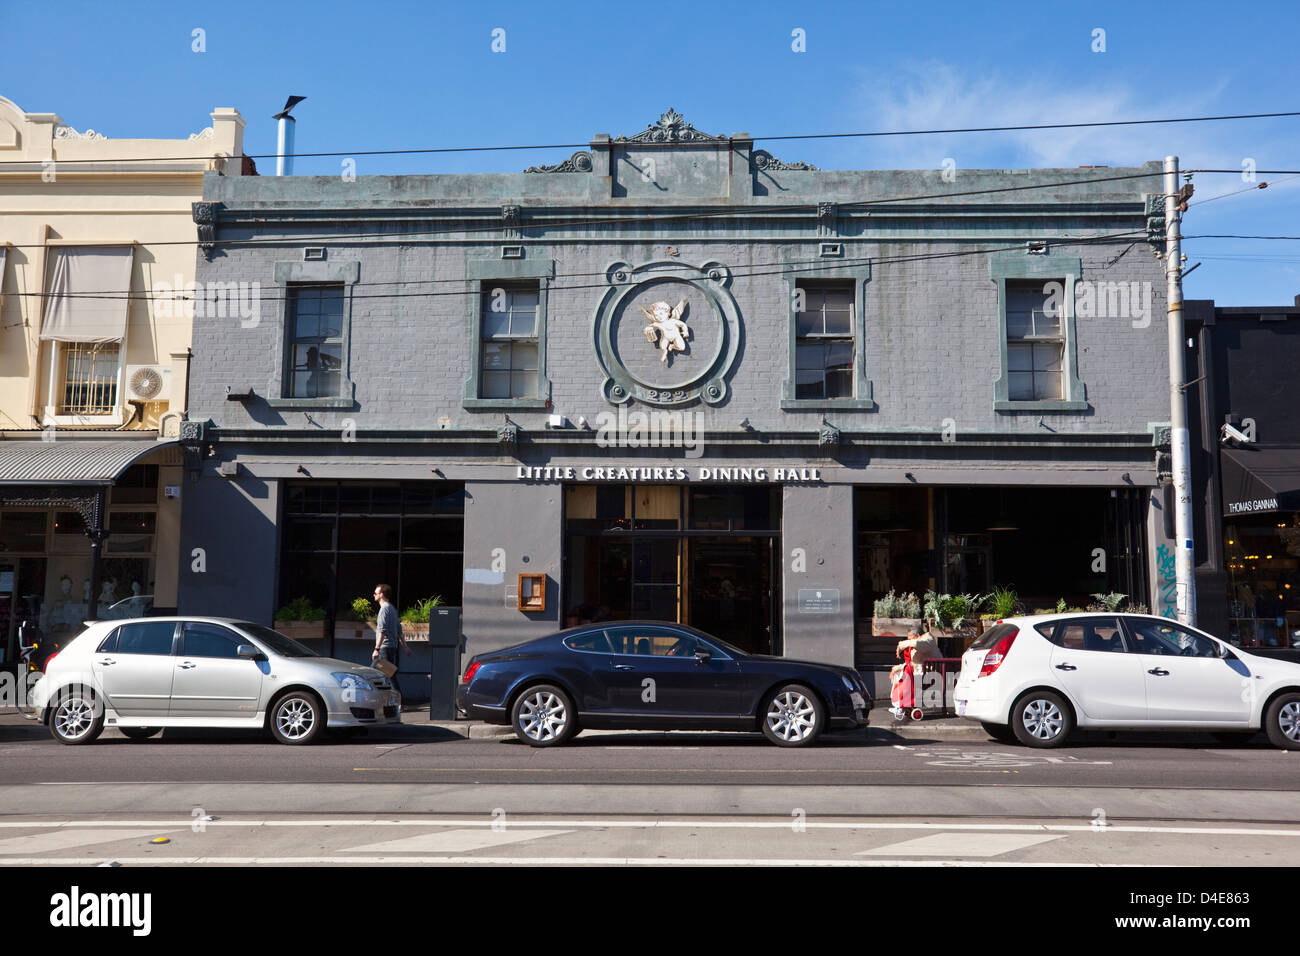 Little Creatures Dining Hall on Brunswick Street. Fitzroy, Melbourne, Victoria, Australia - Stock Image